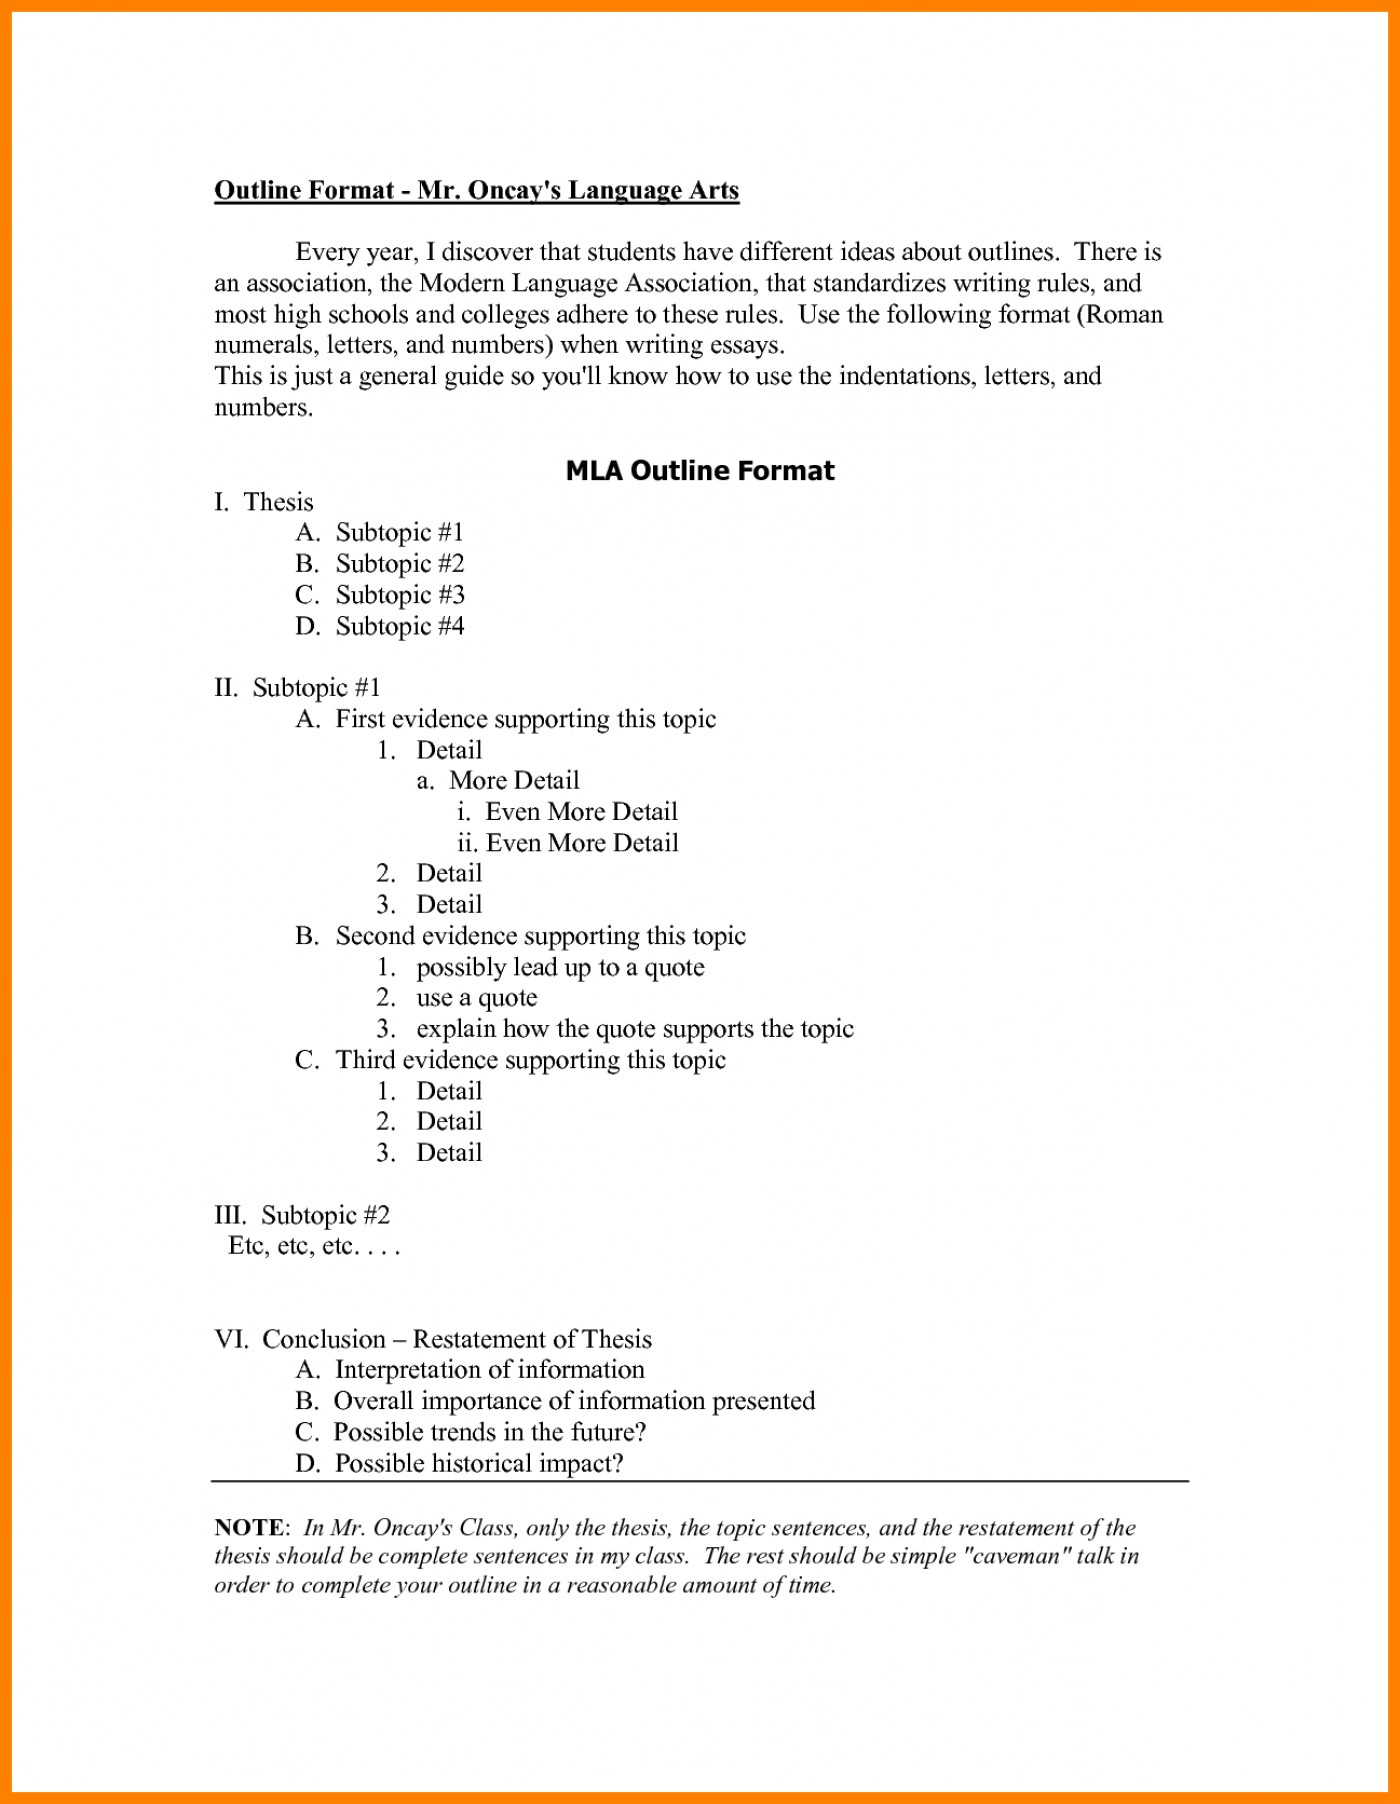 008 Research Paper Mla Format Outline Examples 148 Singular Papers Checklist Template 1400